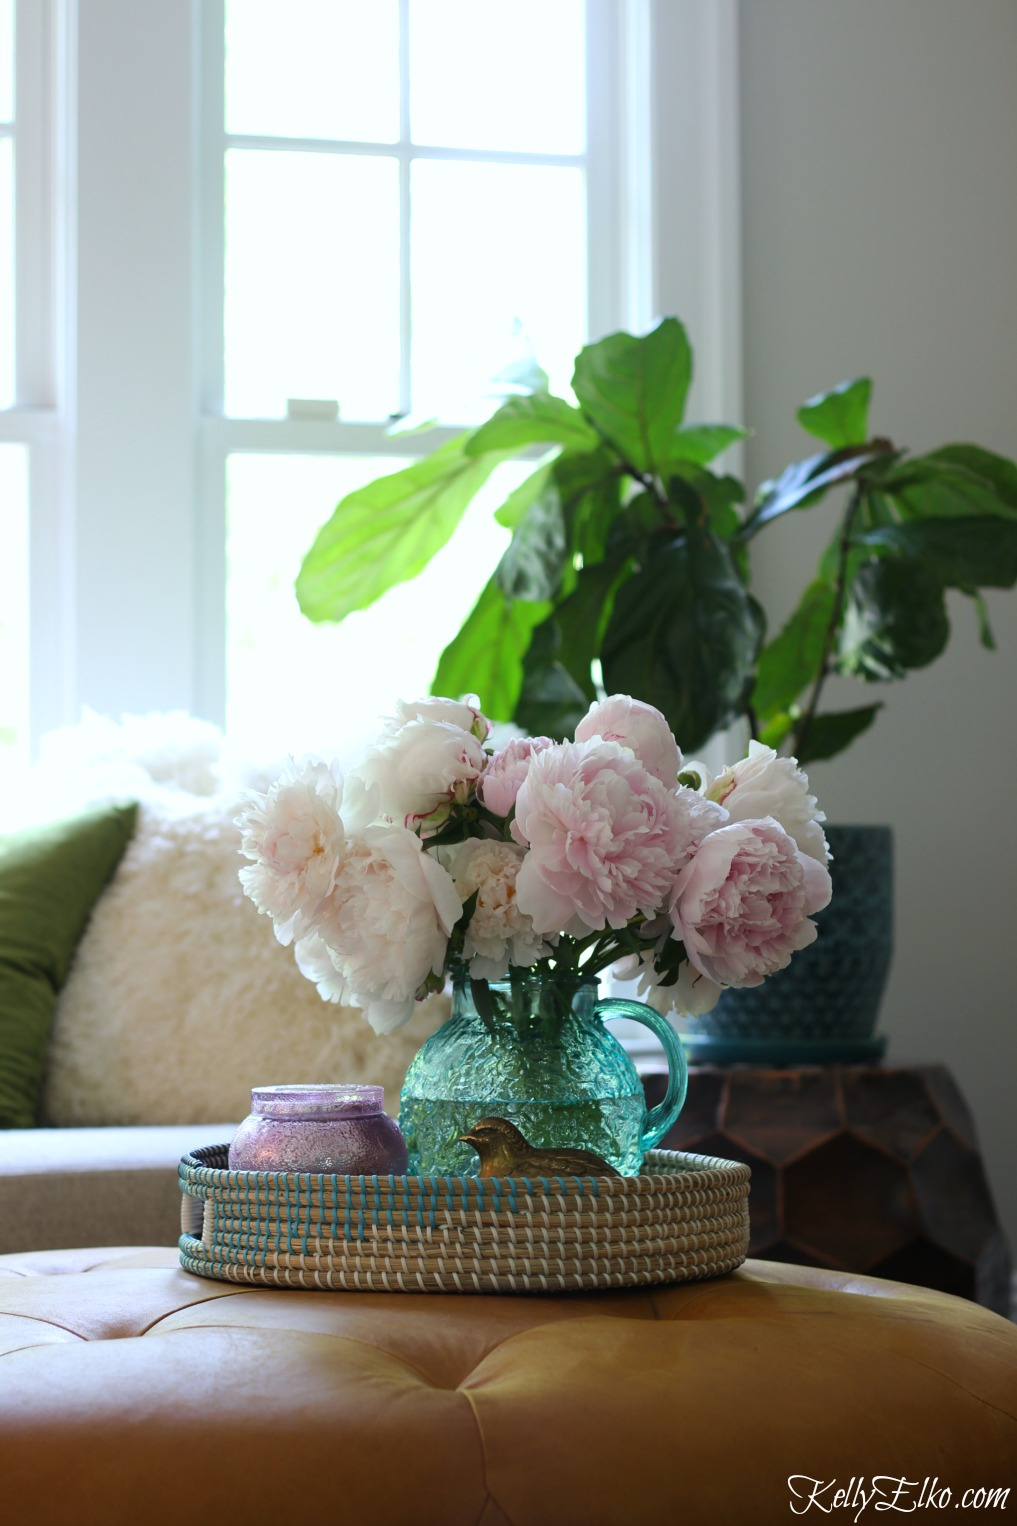 How to Make Peonies Last Longer - love these great tips for making sure your peonies always look in prime condition and love her flower arrangements in unique vases like this vintage blue pitcher kellyelko.com #peonies #gardeningtips #gardens #gardening #perennials